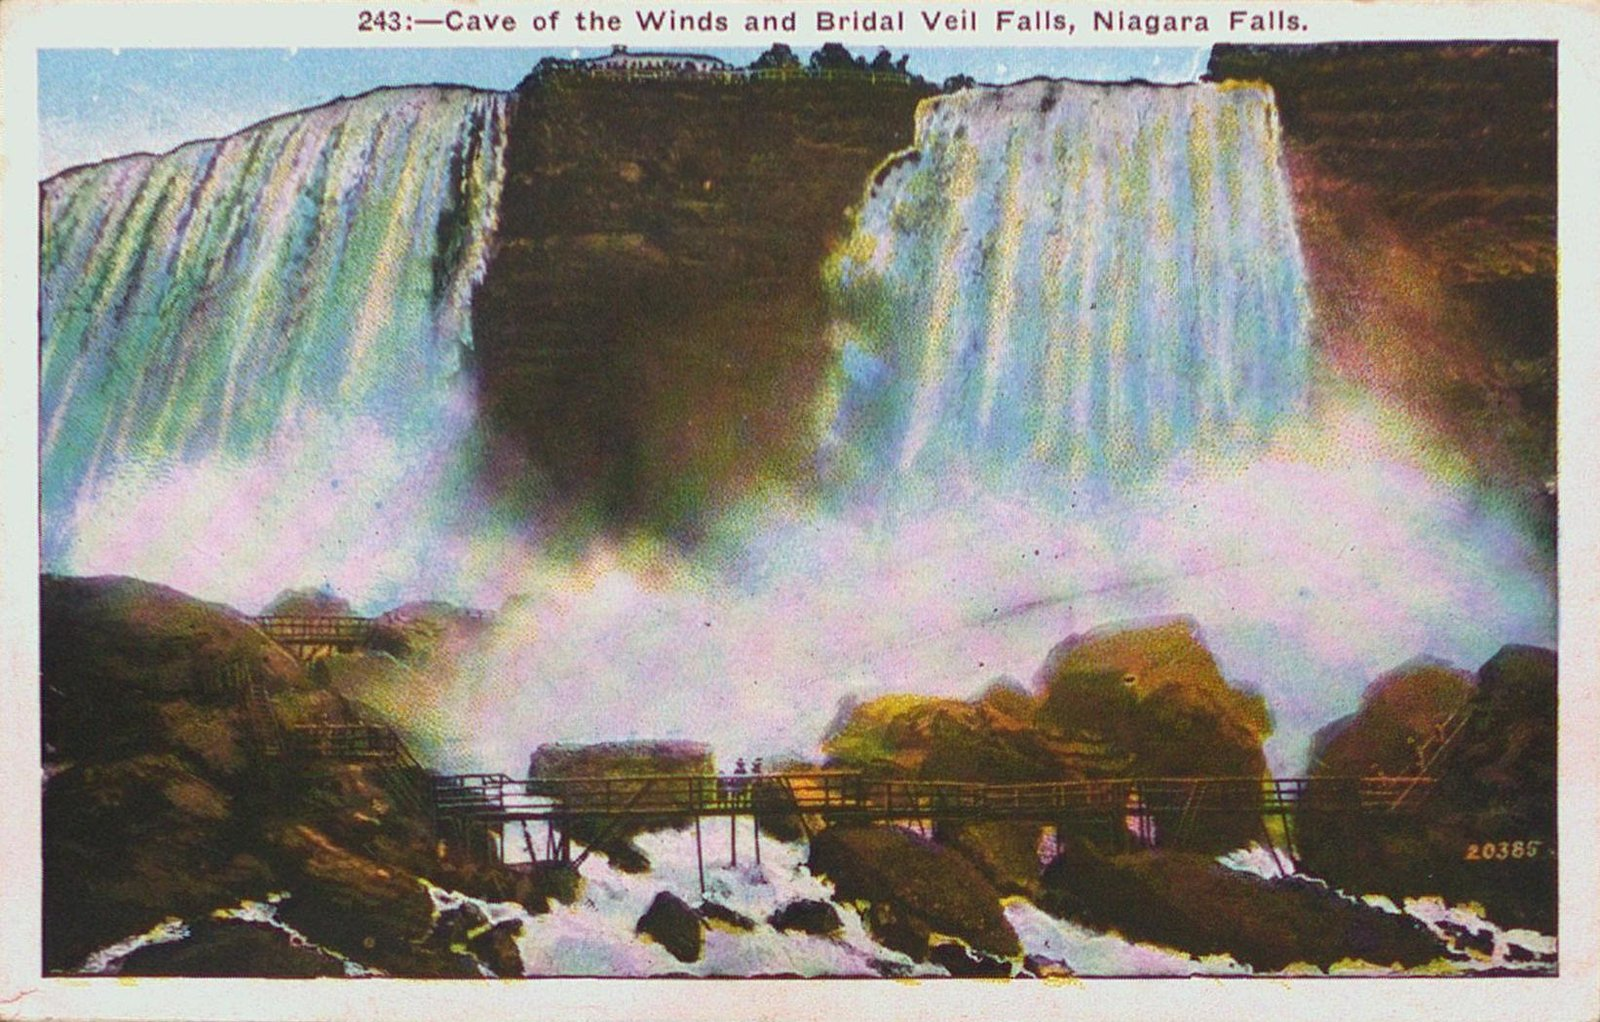 Niagara Falls-The Bridal Veil Falls & The Cave of the Winds